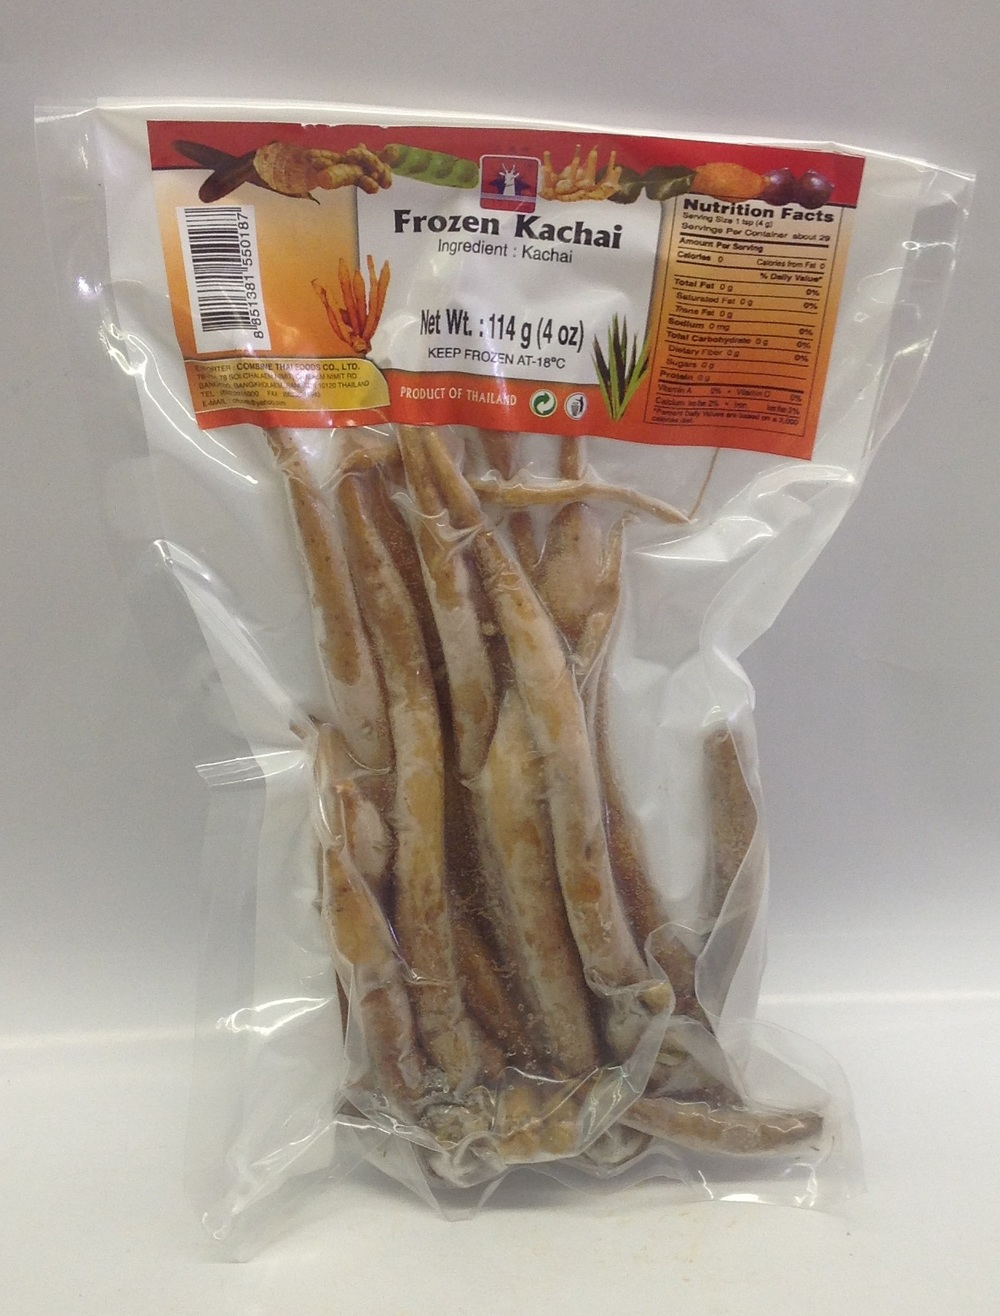 Frozen Krachai, Whole   Deer   FZV4203 100x4 oz